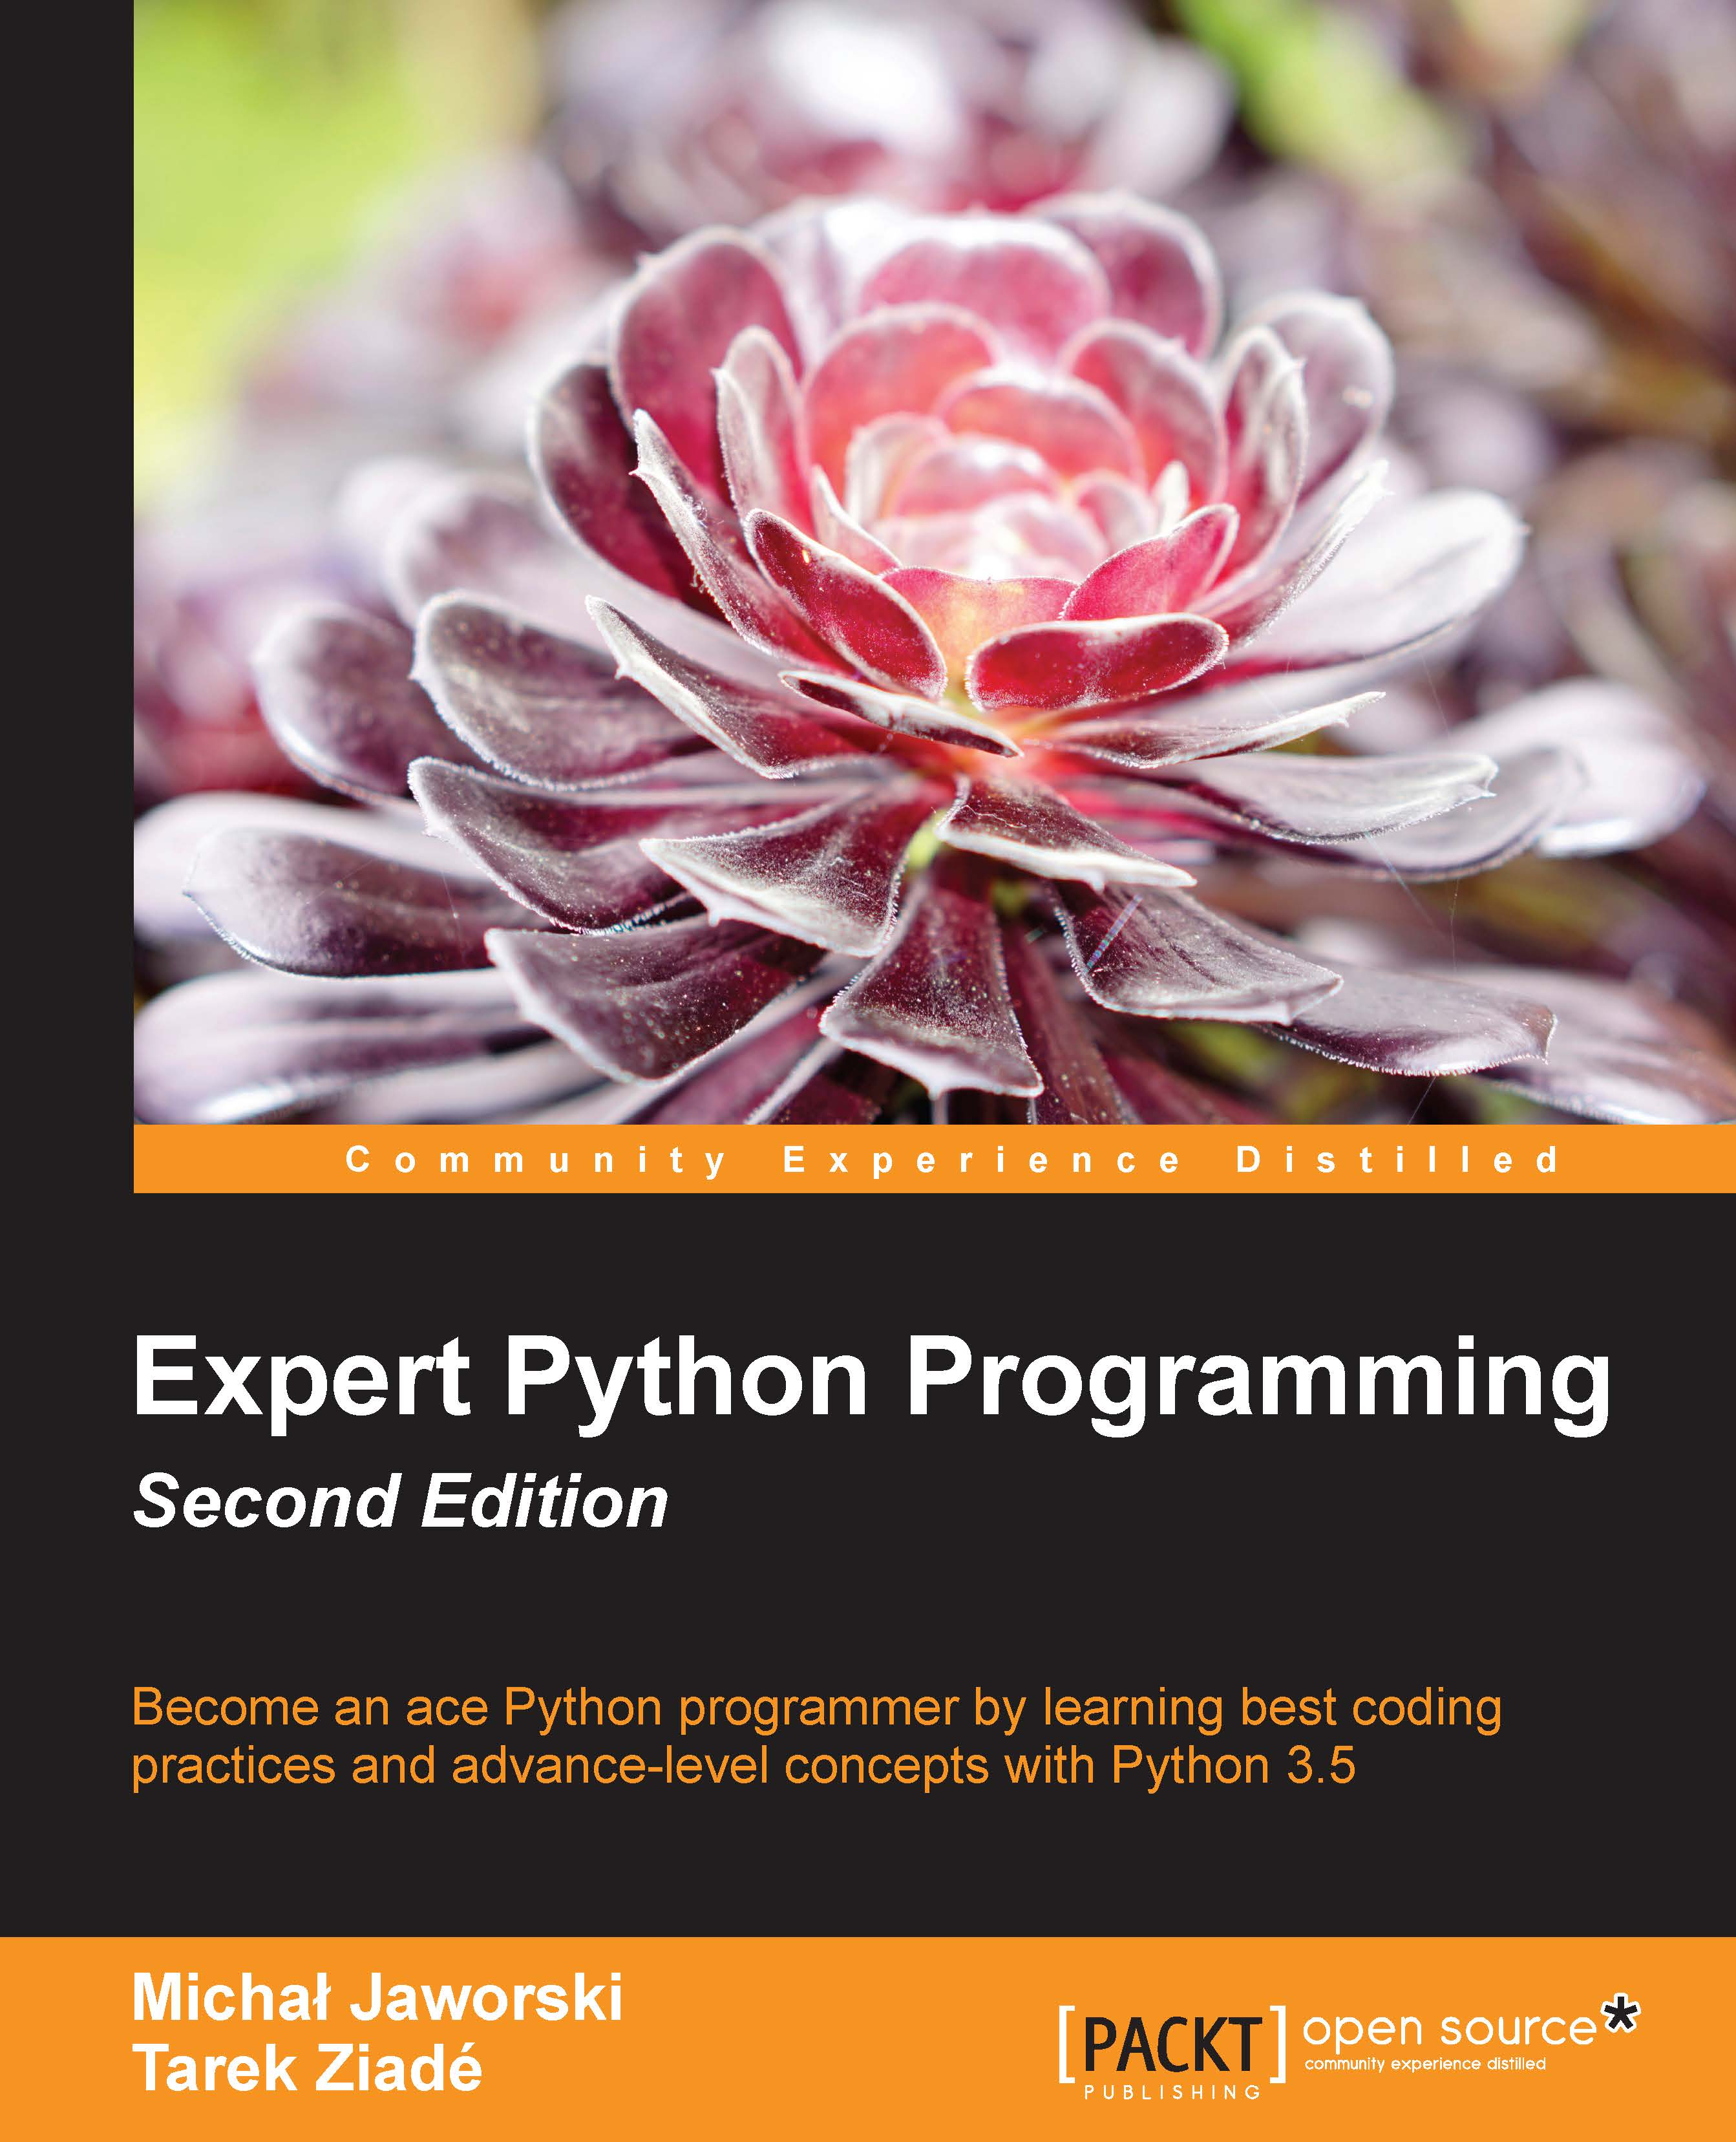 Expert Python Programming - Second Edition by Michal